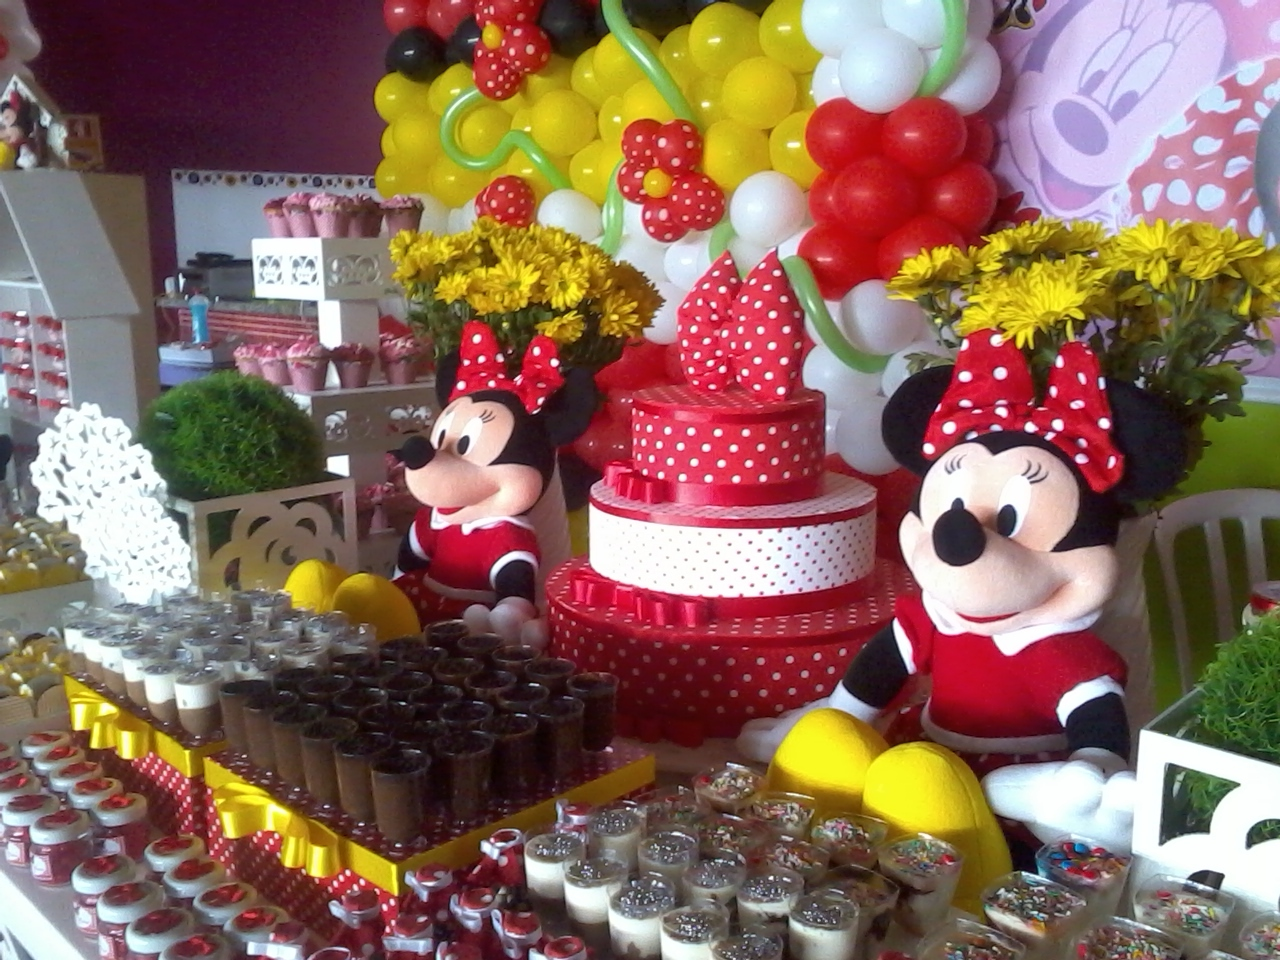 Provencal Minnie Vermelha Festas E Eventos Decoracao Pictures to pin